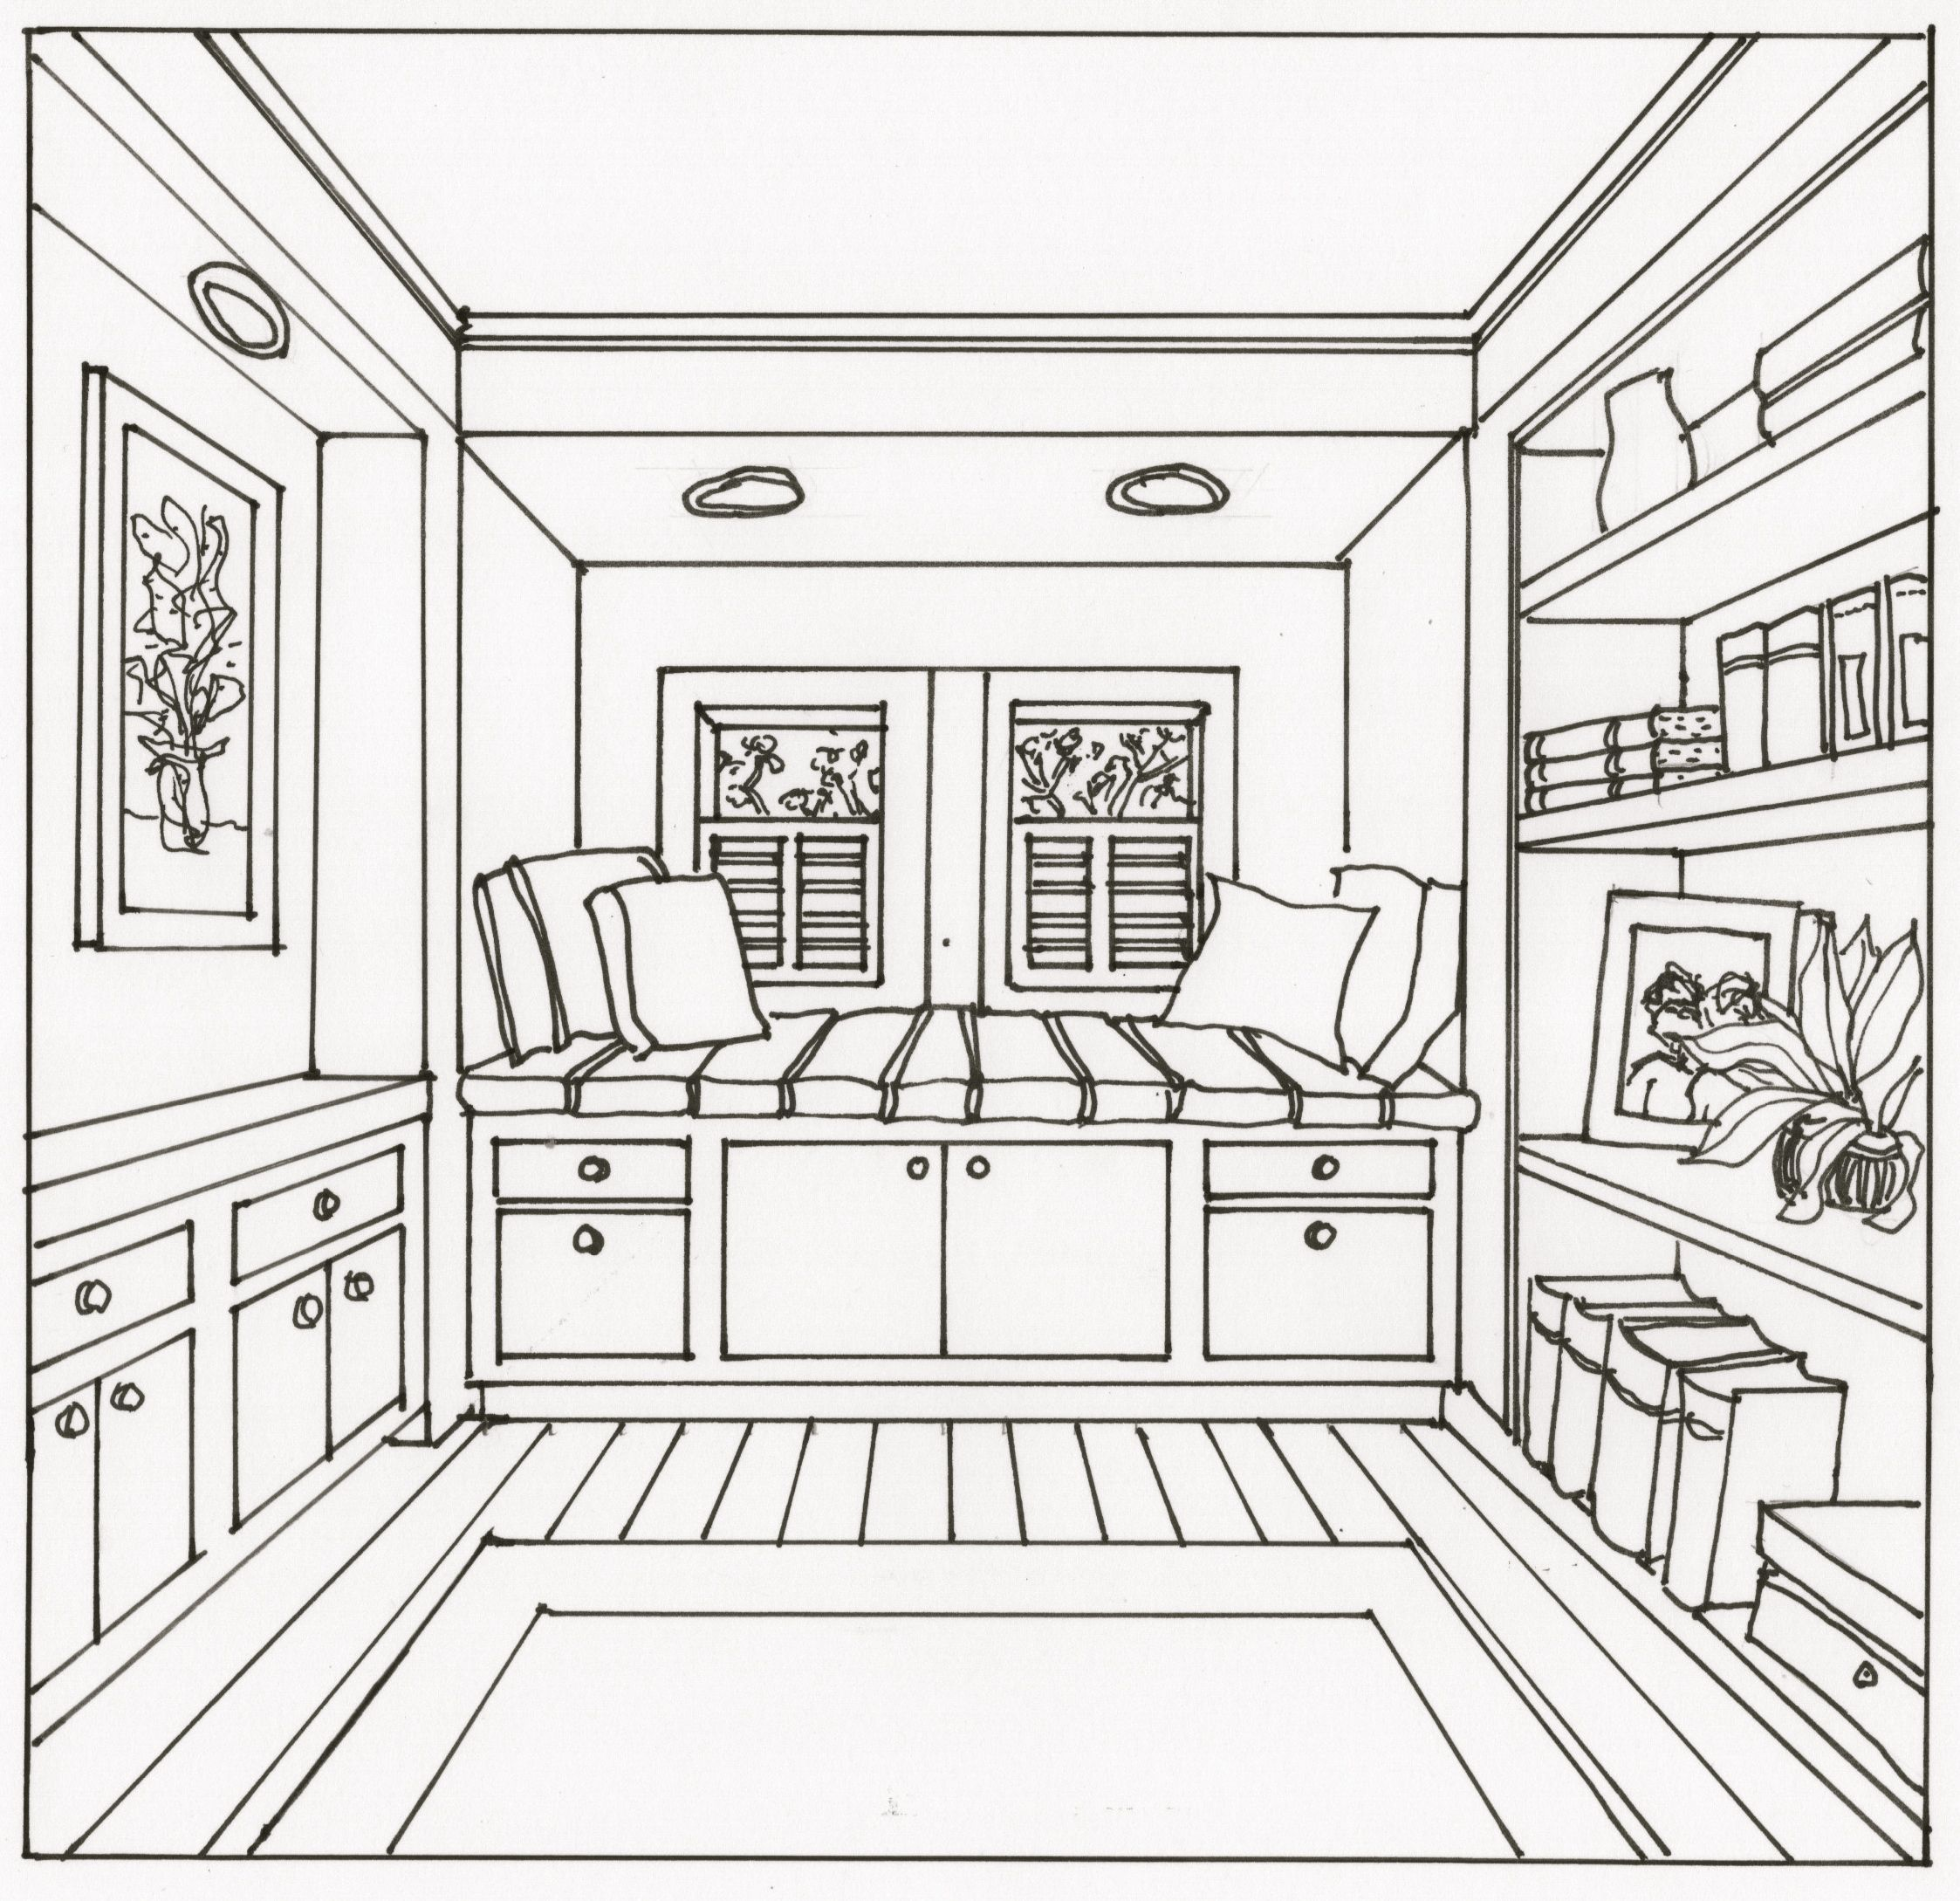 this one point perspective window seat image was one of the drawing activities description from. Black Bedroom Furniture Sets. Home Design Ideas